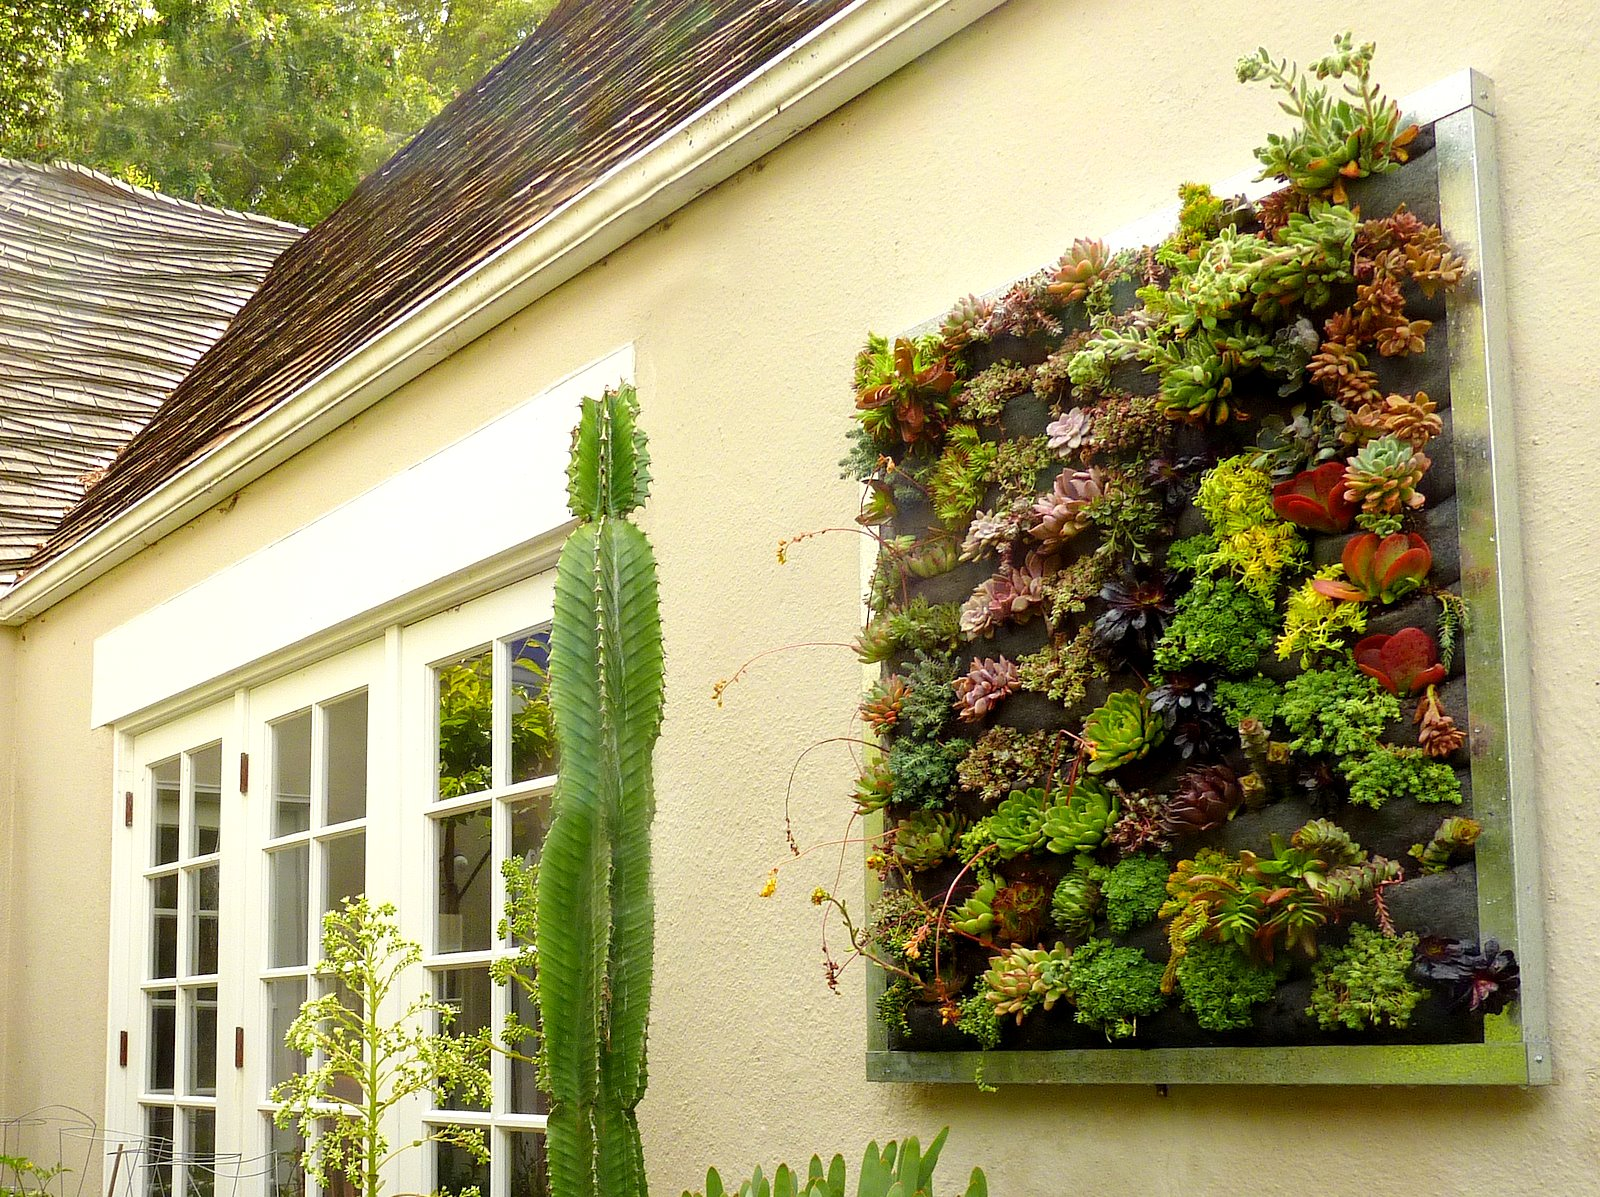 Plants On Walls vertical garden systems: Gilman Succulent Garden: A